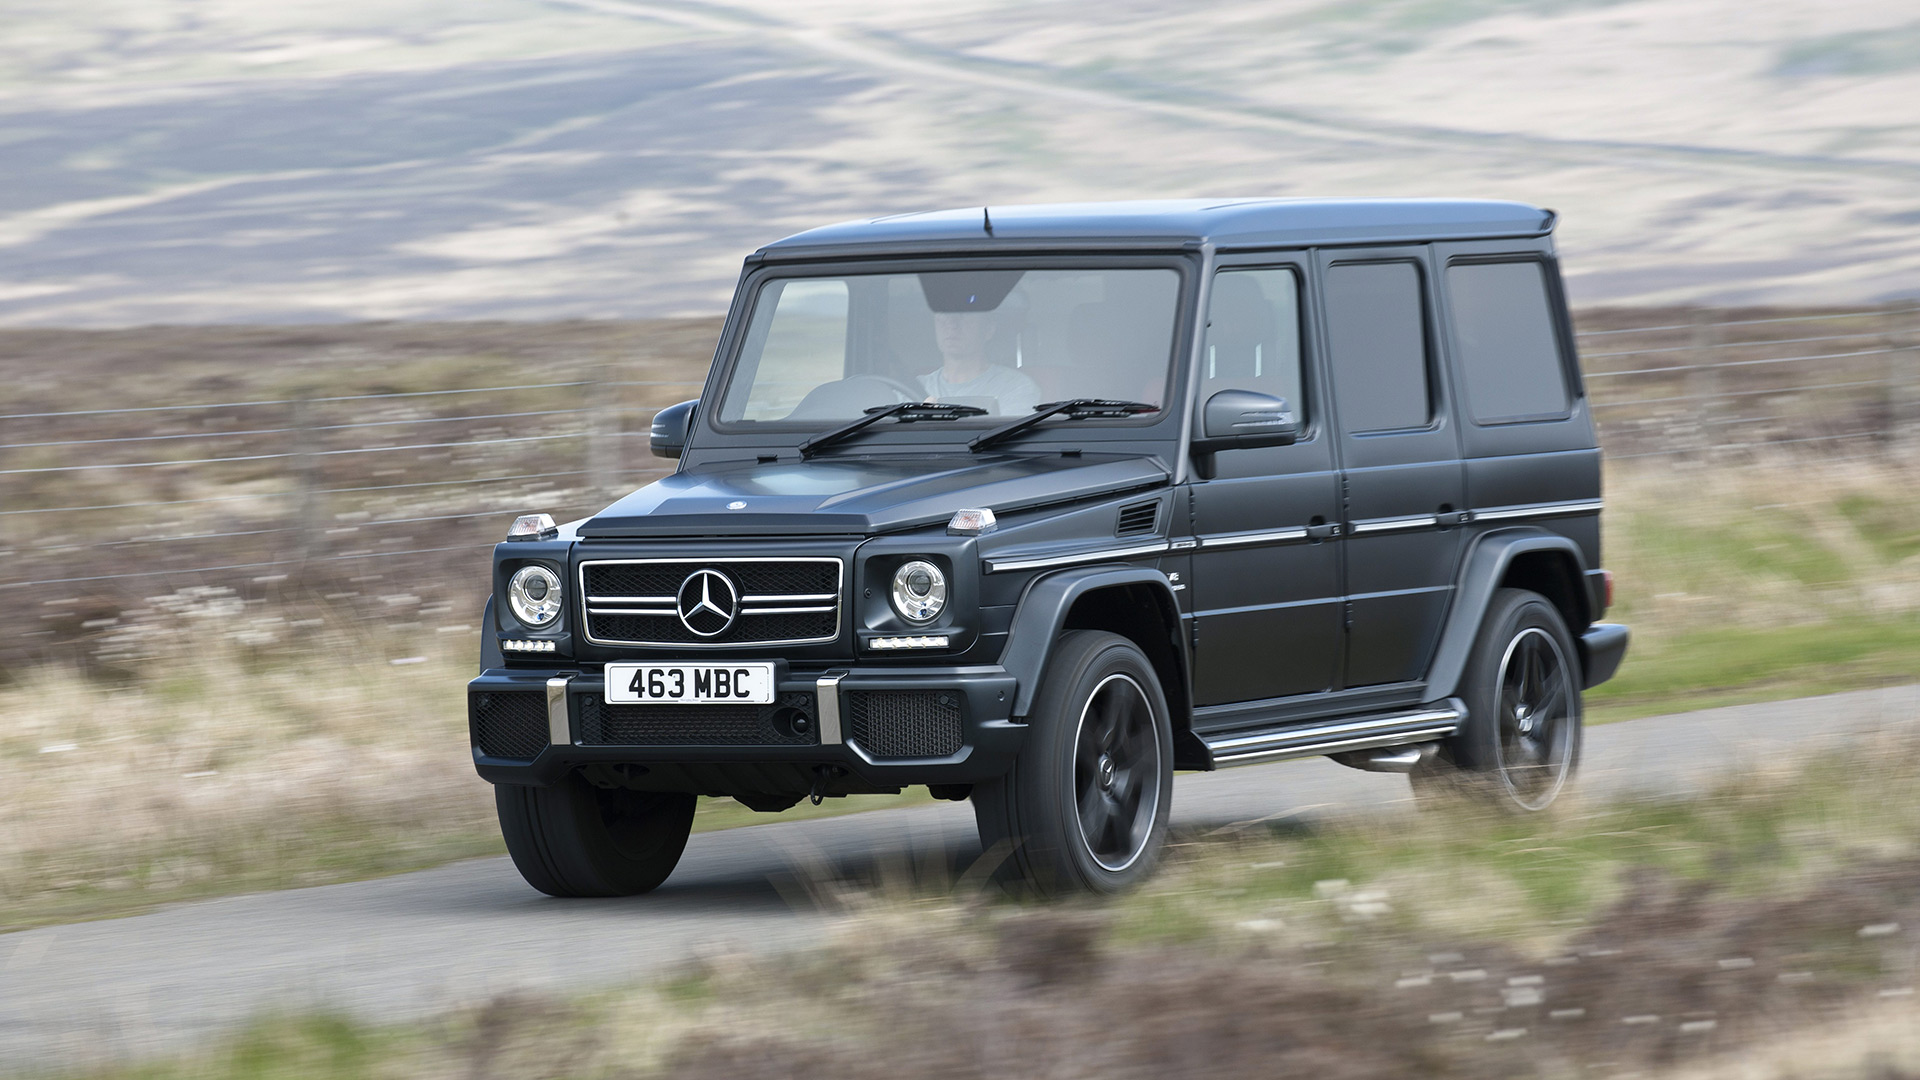 mercedes benz g class 2017 g 63 amg price mileage reviews specification gallery overdrive. Black Bedroom Furniture Sets. Home Design Ideas